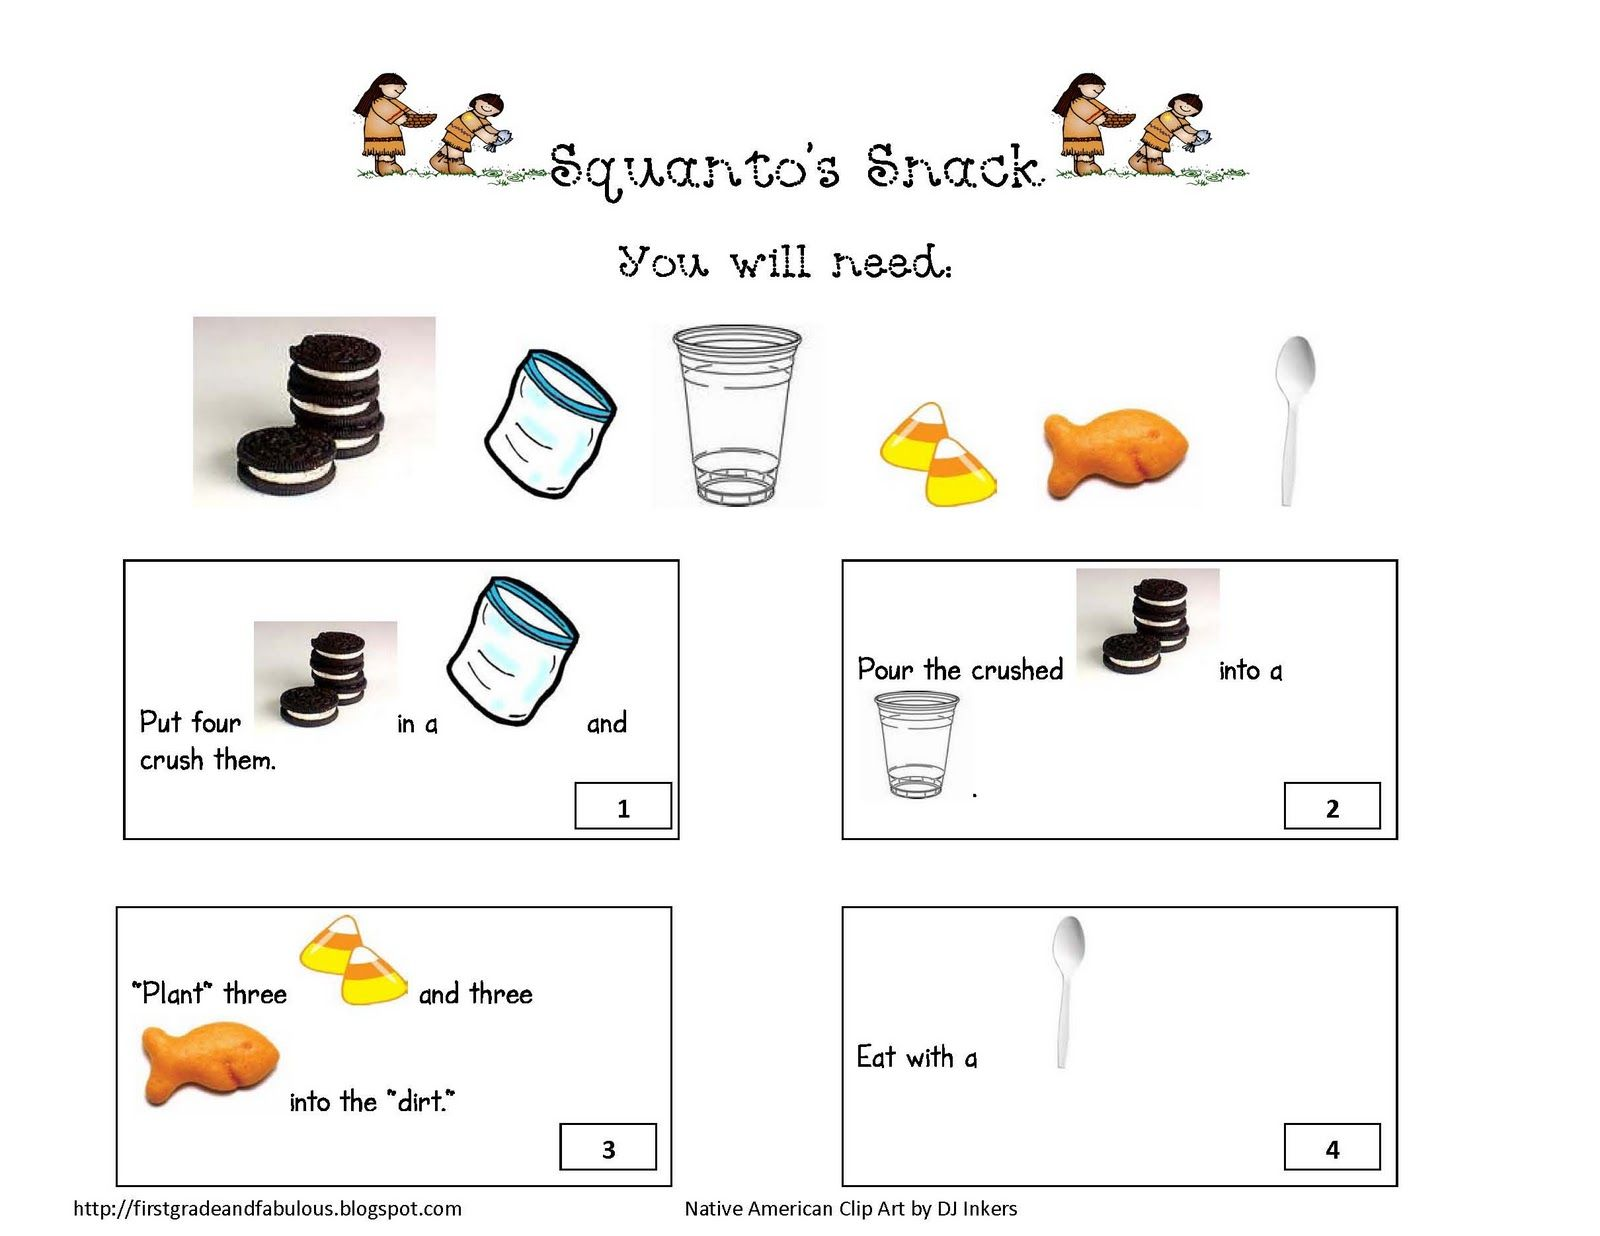 Squanto's Snack. Love this! I used the rebus story as